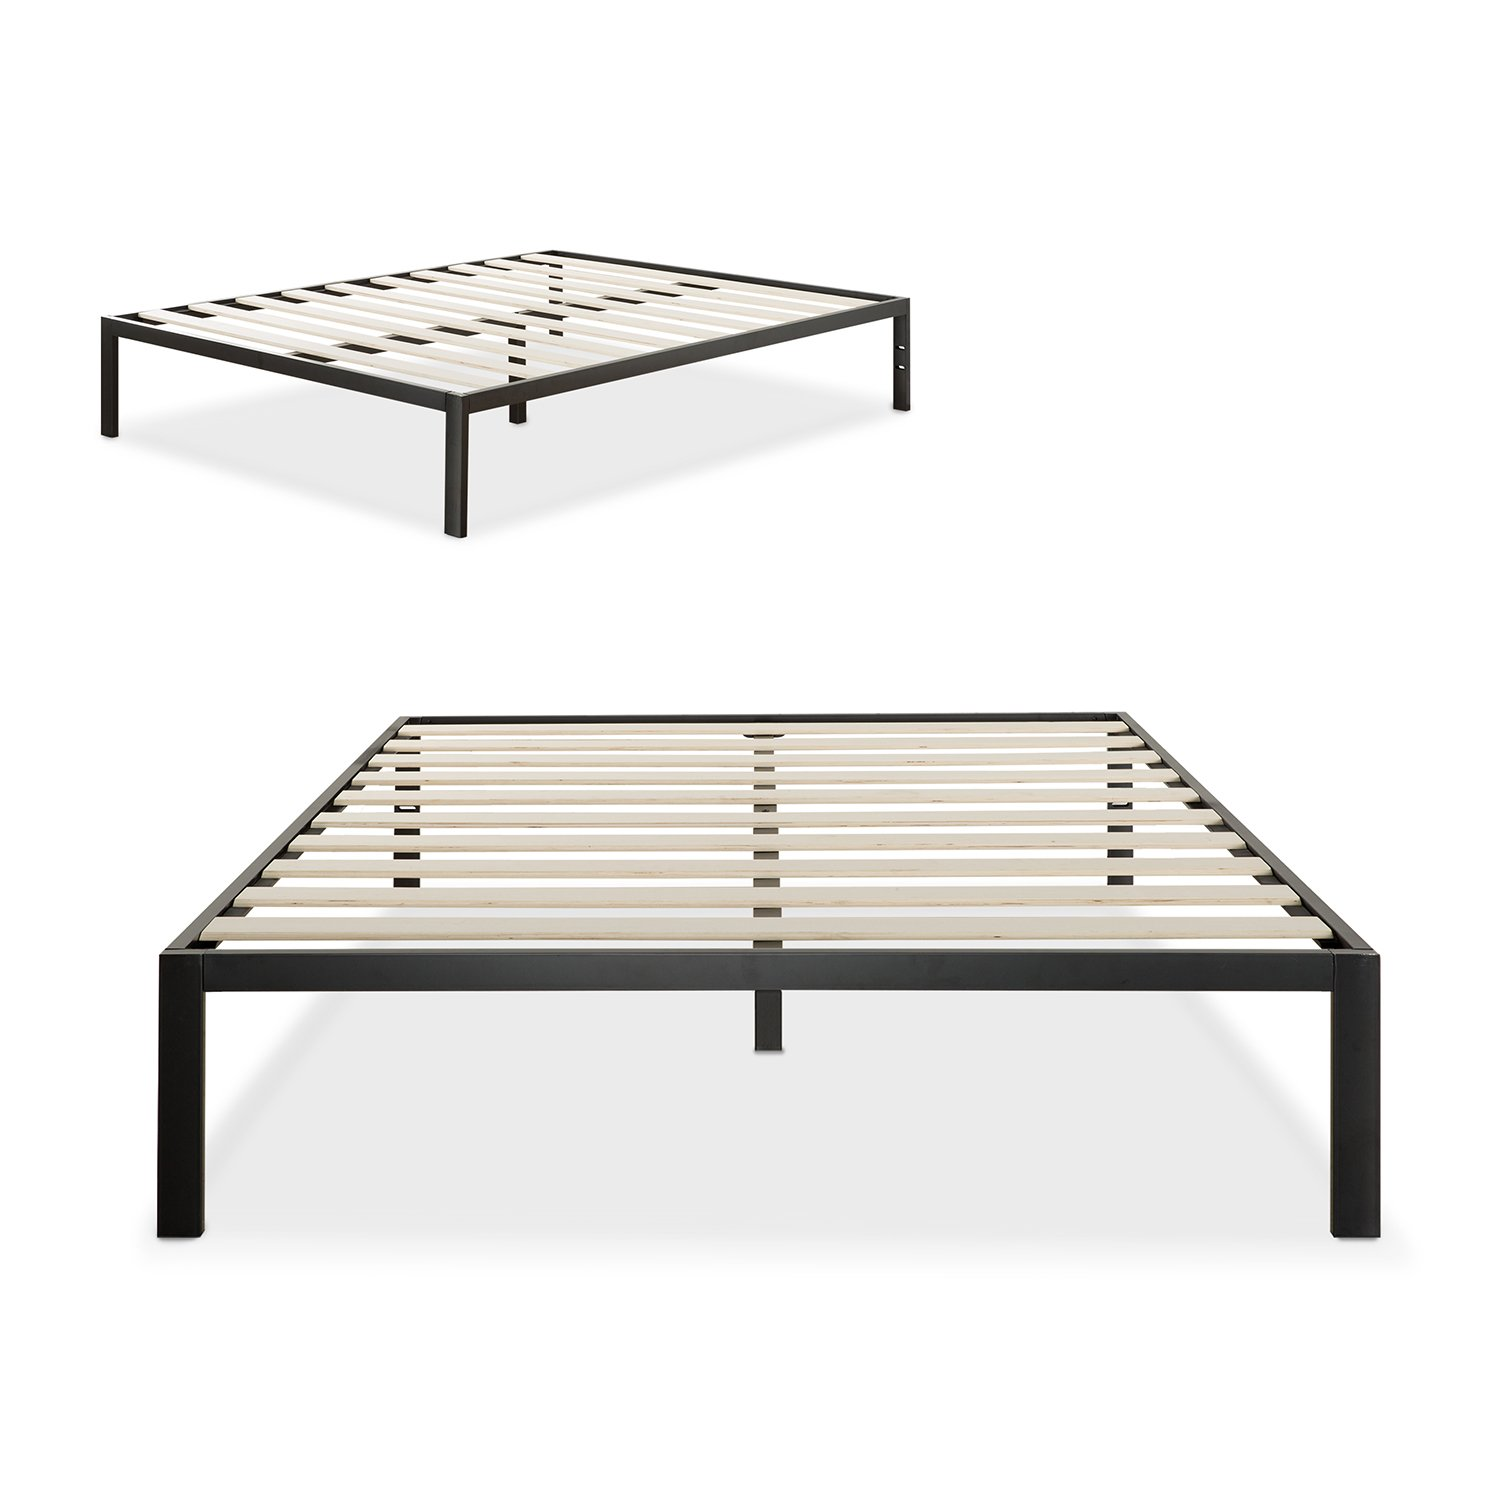 Metal bed frames with storage - Zinus Modern Studio 14 Inch Platform 1500 Metal Bed Frame Mattress Foundation No Boxspring Needed Wooden Slat Support